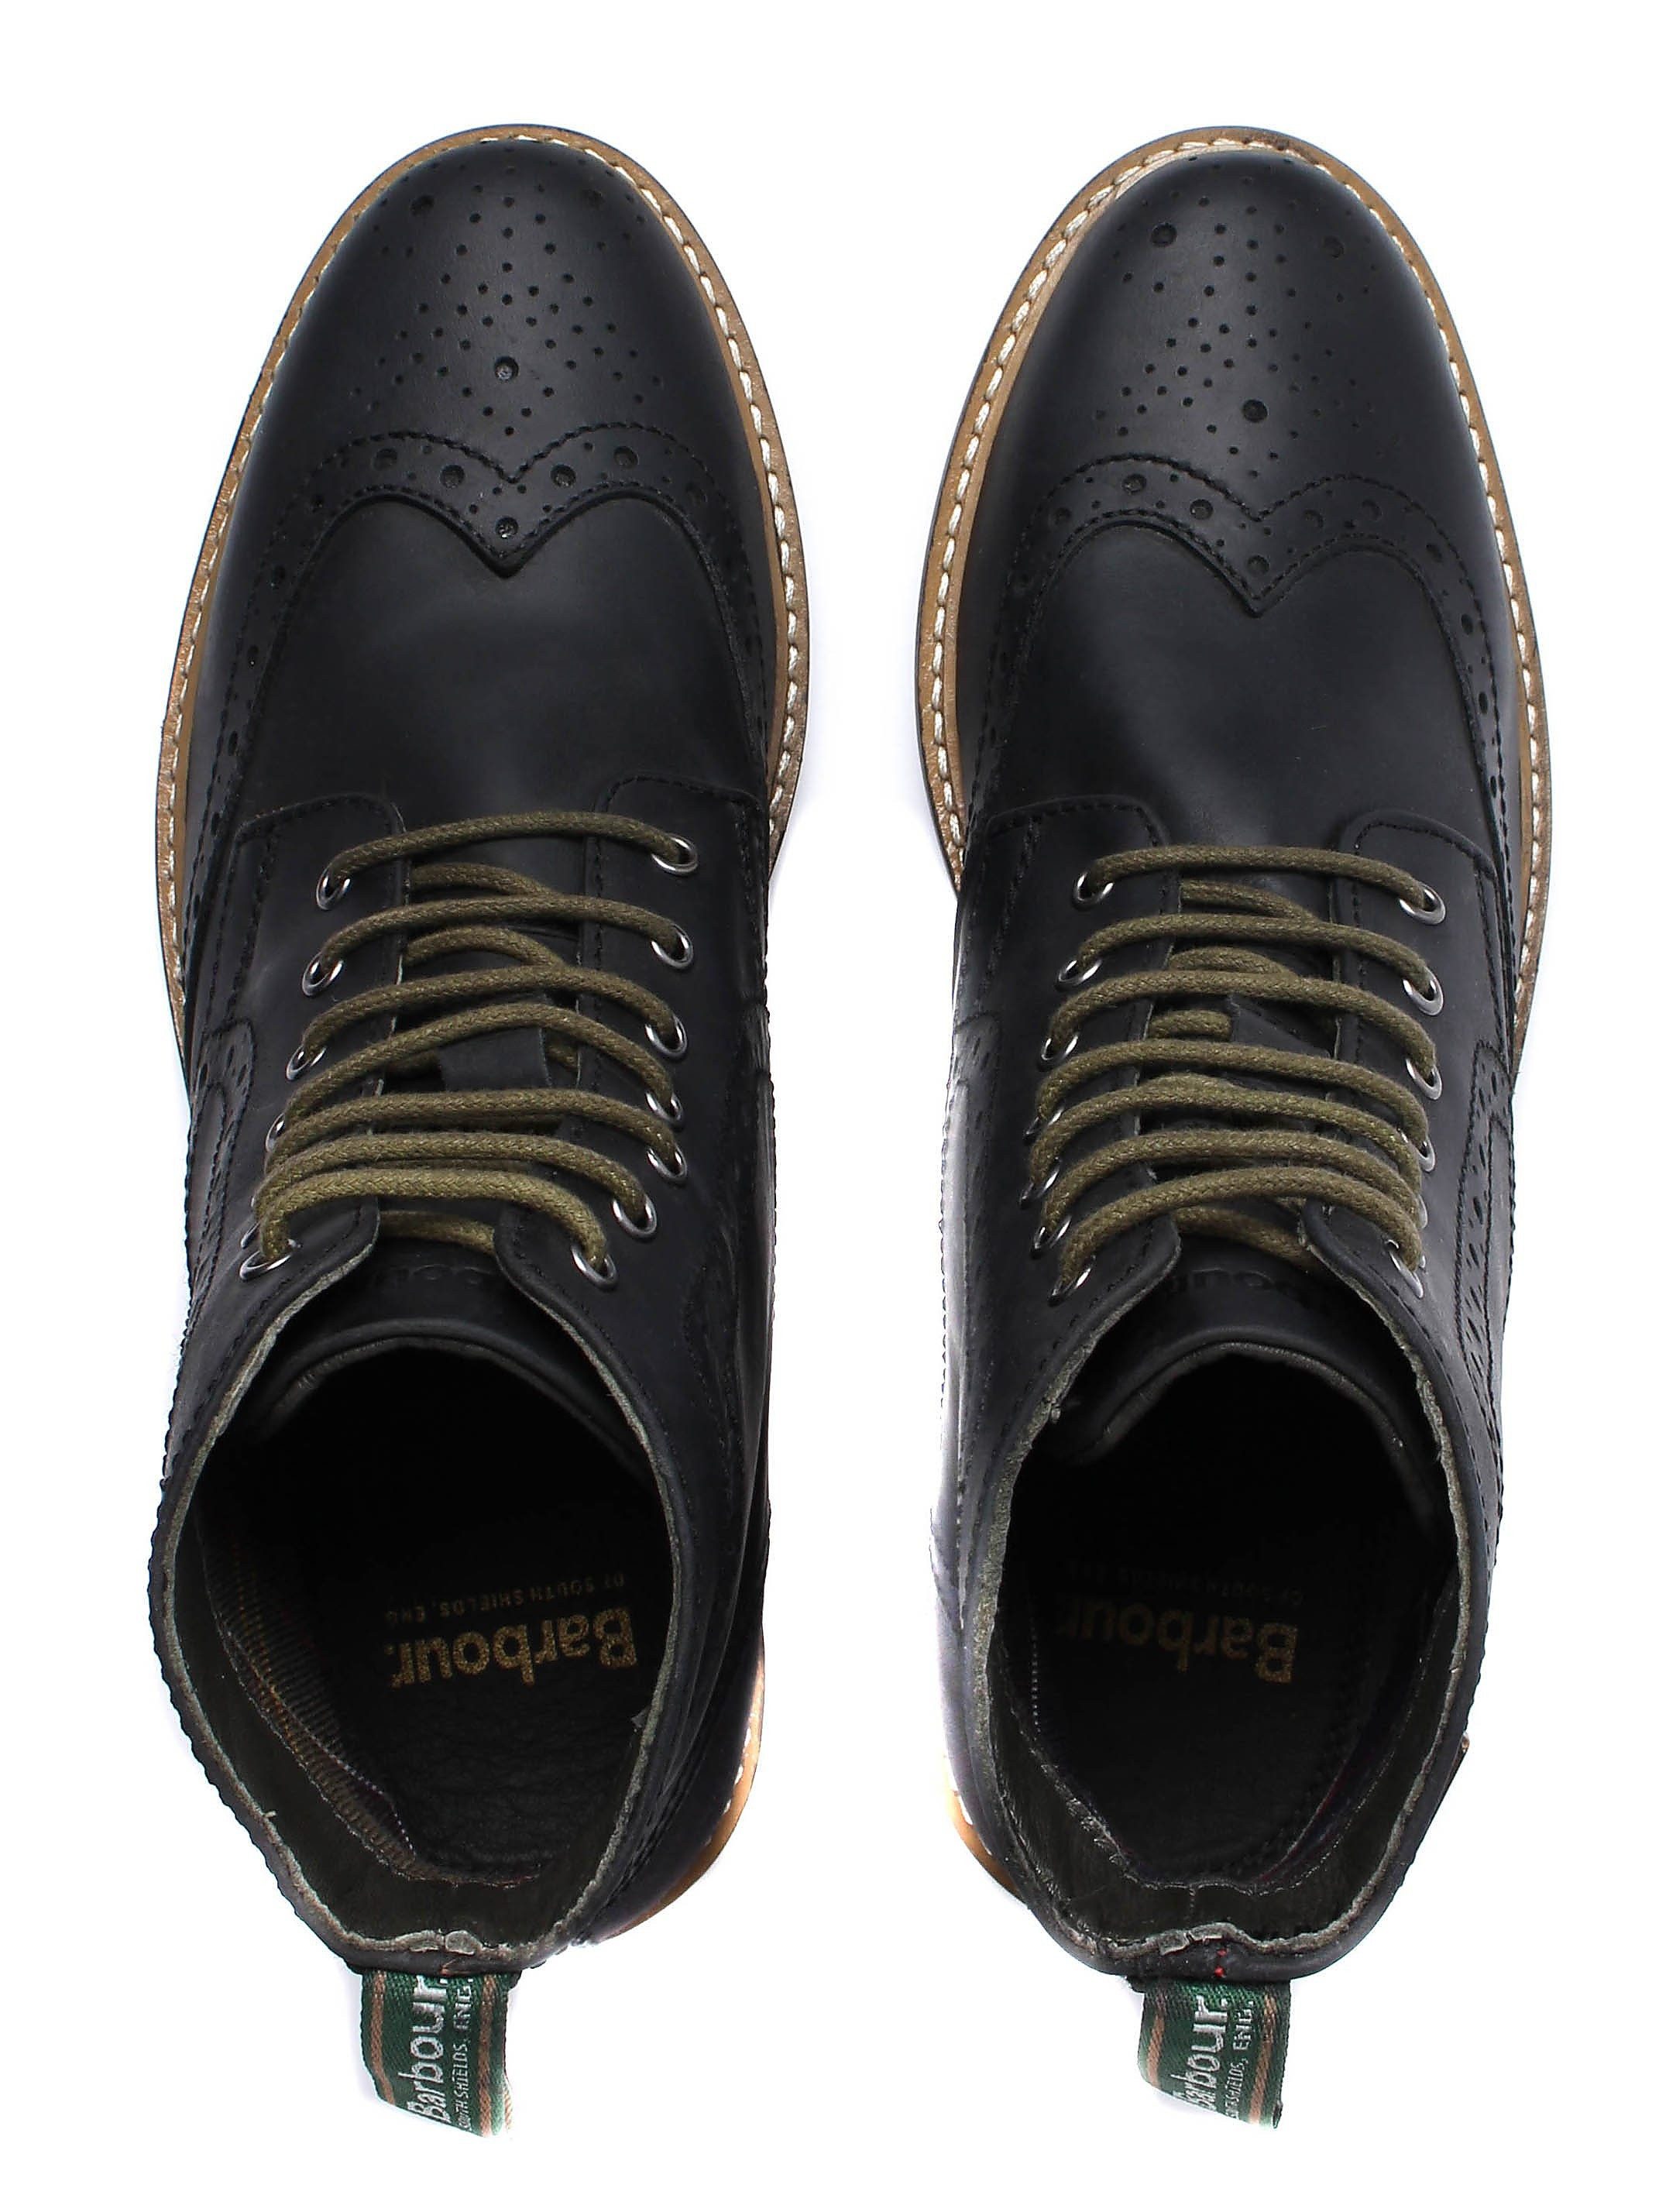 Barbour Men's Belsay Brogue Derby Boots - Black Wax Leather